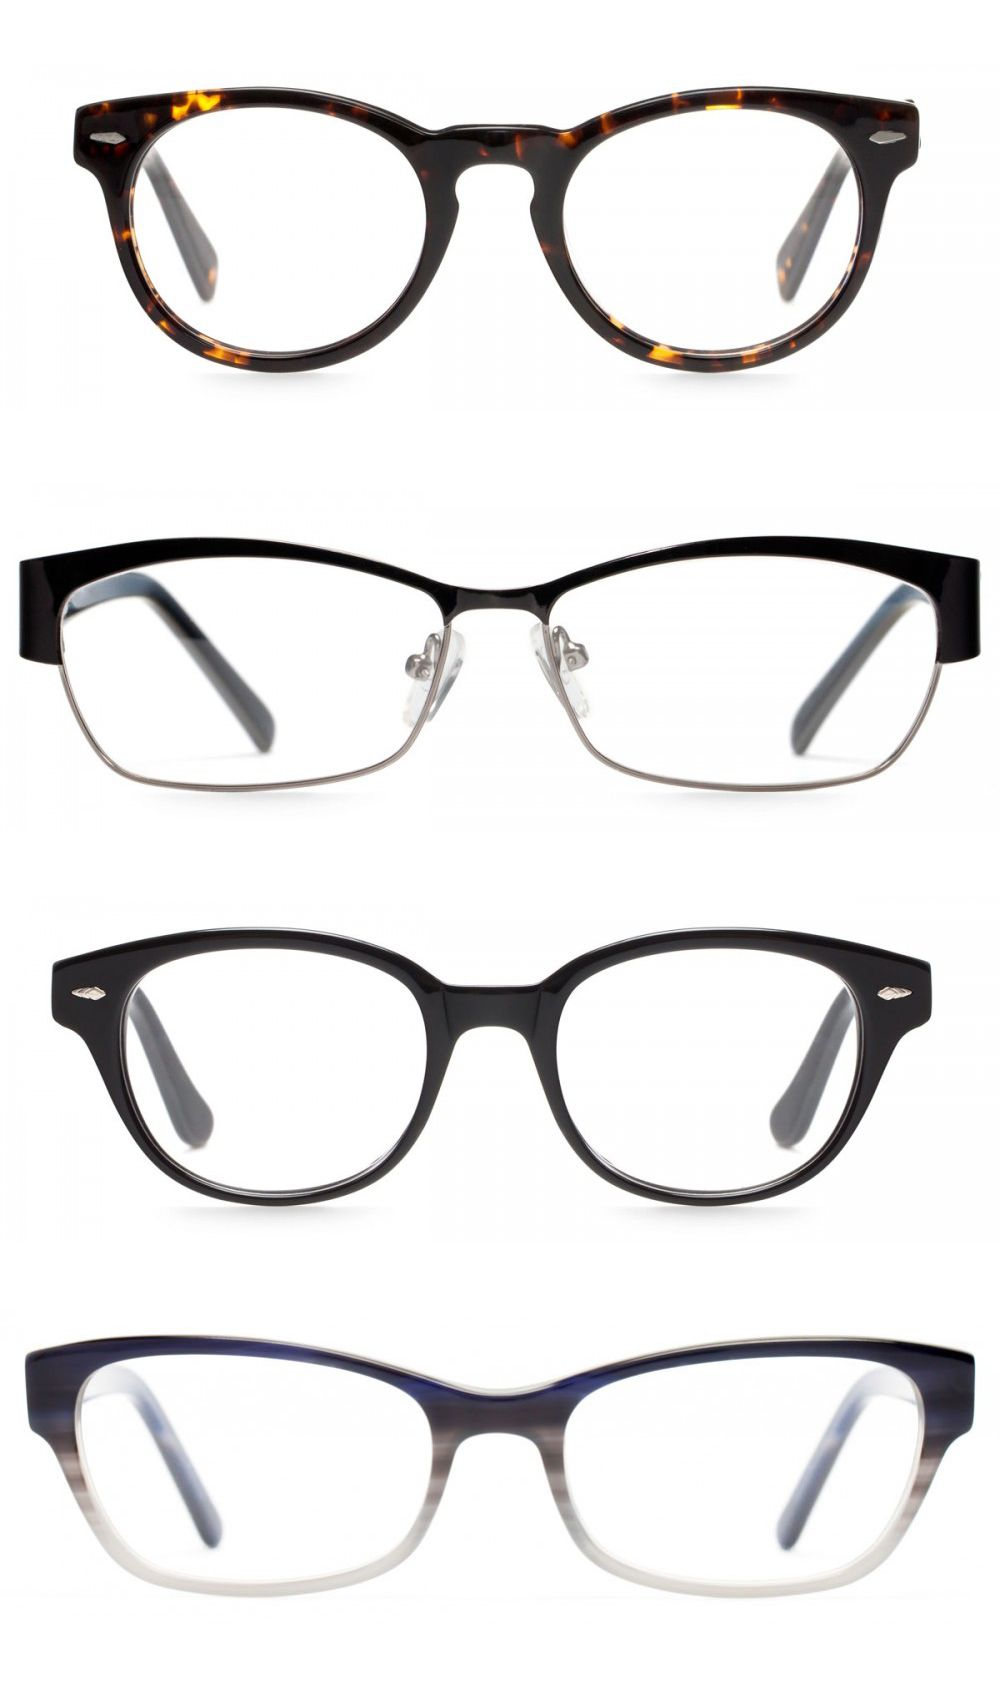 Eyeglass Frame For Square Face : The perfect glasses for square faces felix + iris ...